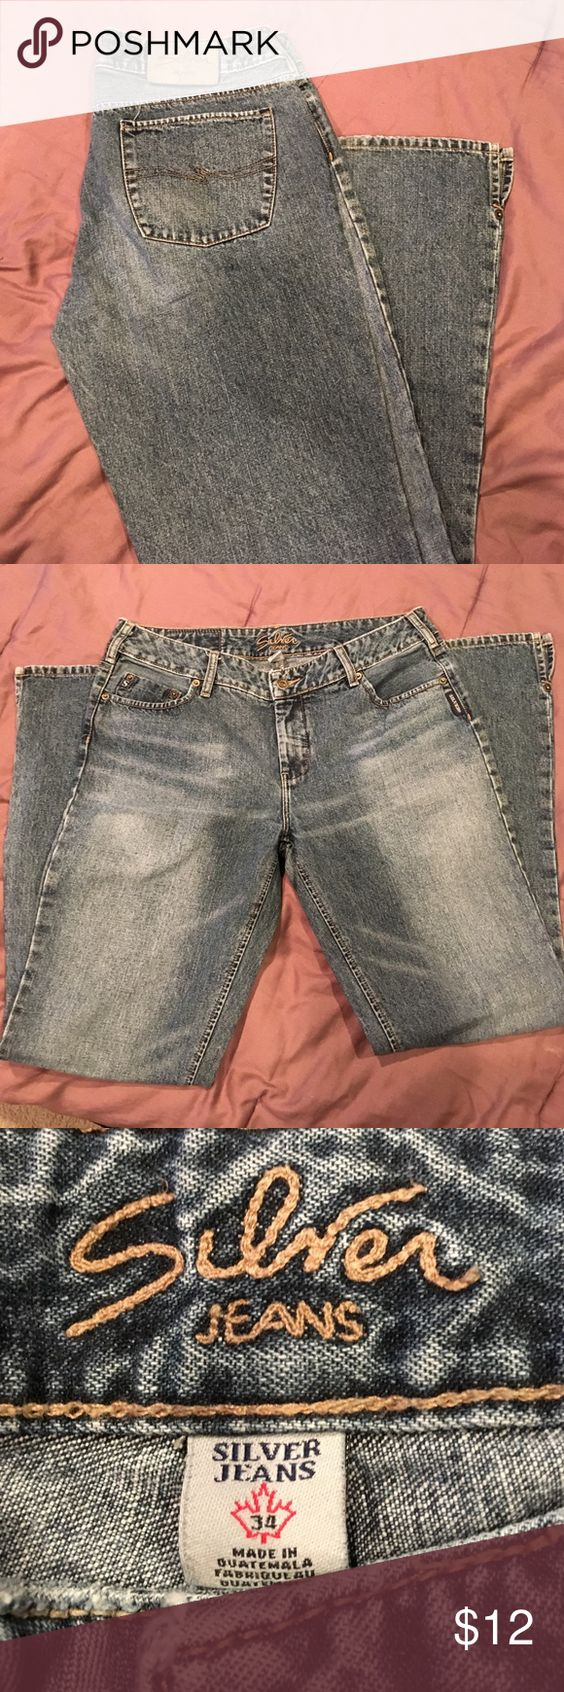 Silver Jeans- size 34/32